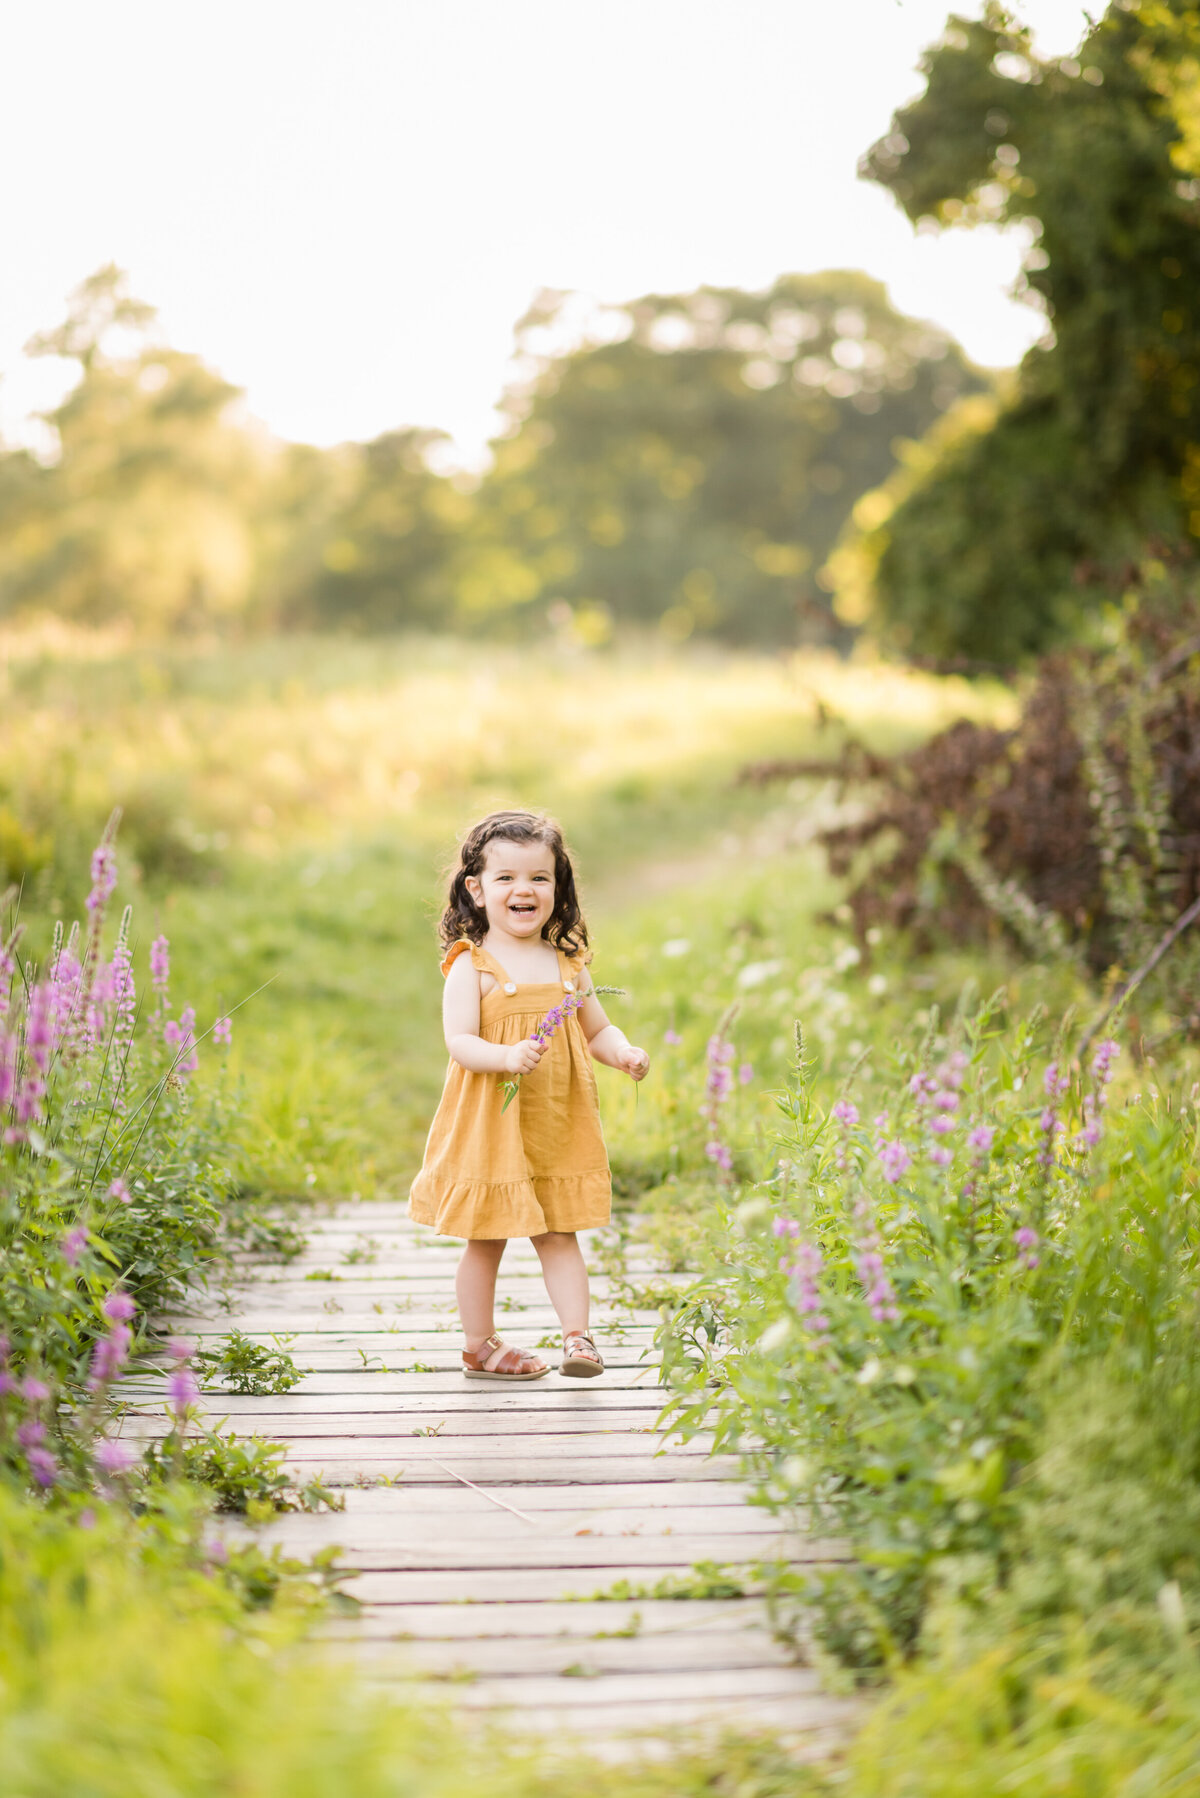 Boston-family-photographer-bella-wang-photography-Lifestyle-session-outdoor-wildflower-15